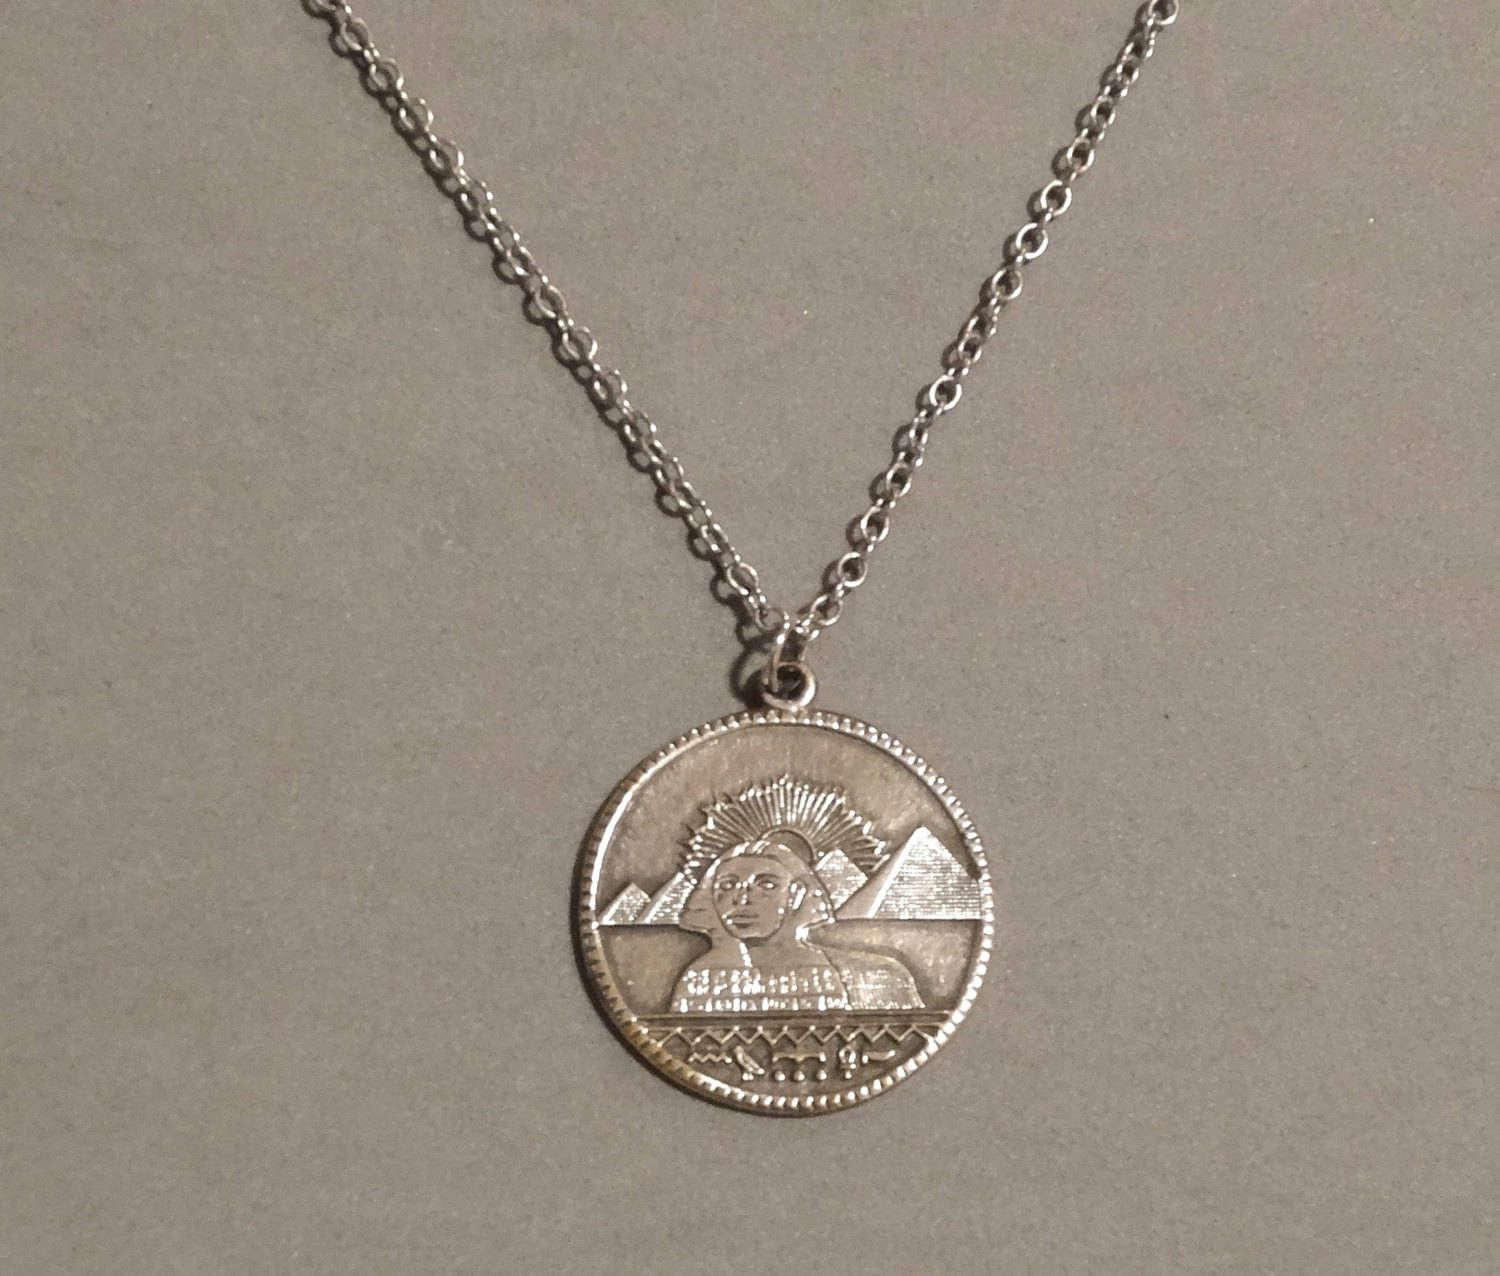 Vintage egyptian necklace coin pendant sterling silver king tut vintage egyptian necklace coin pendant sterling silver king tut ancient egypt symbols pyramids art deco jewelry aloadofball Gallery